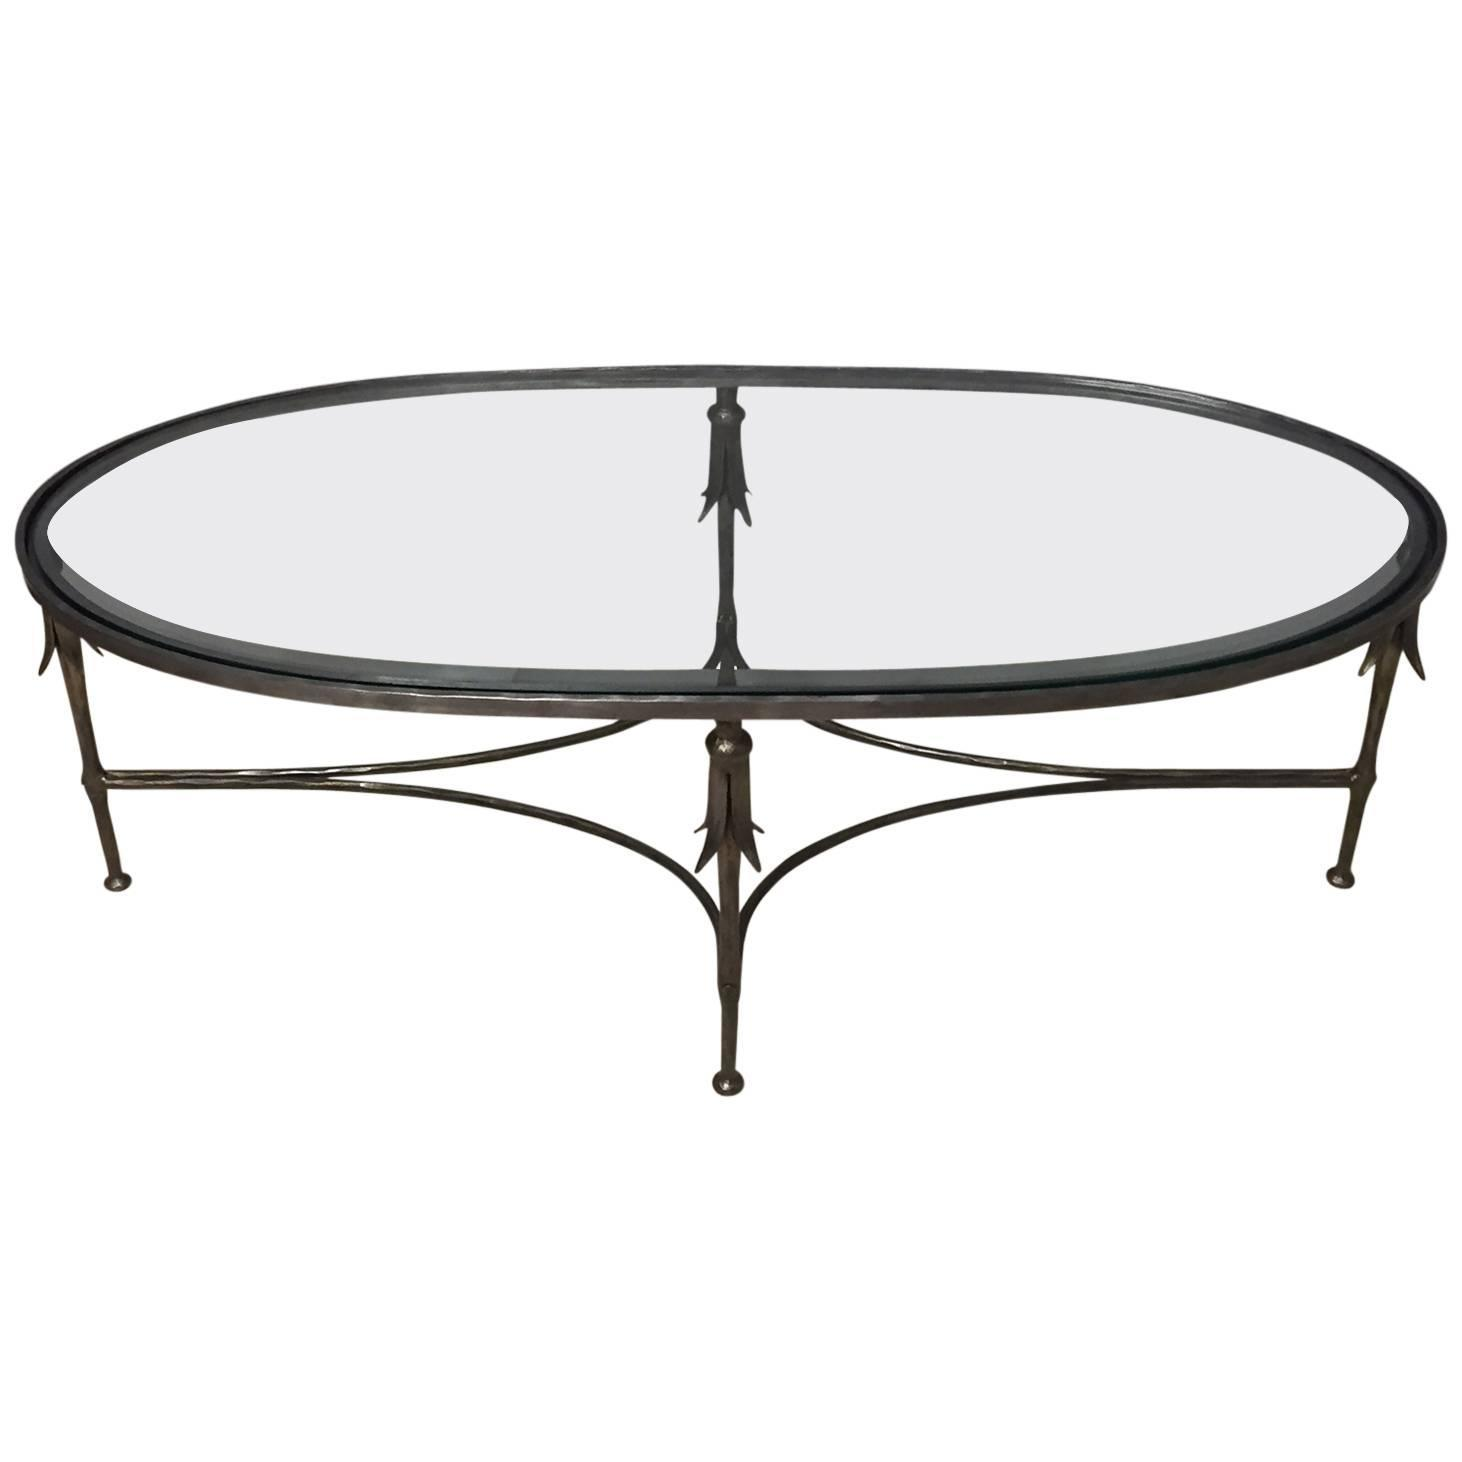 Elegant French Hand Wrought Iron And Glass Oblong Coffee Table At 1stdibs